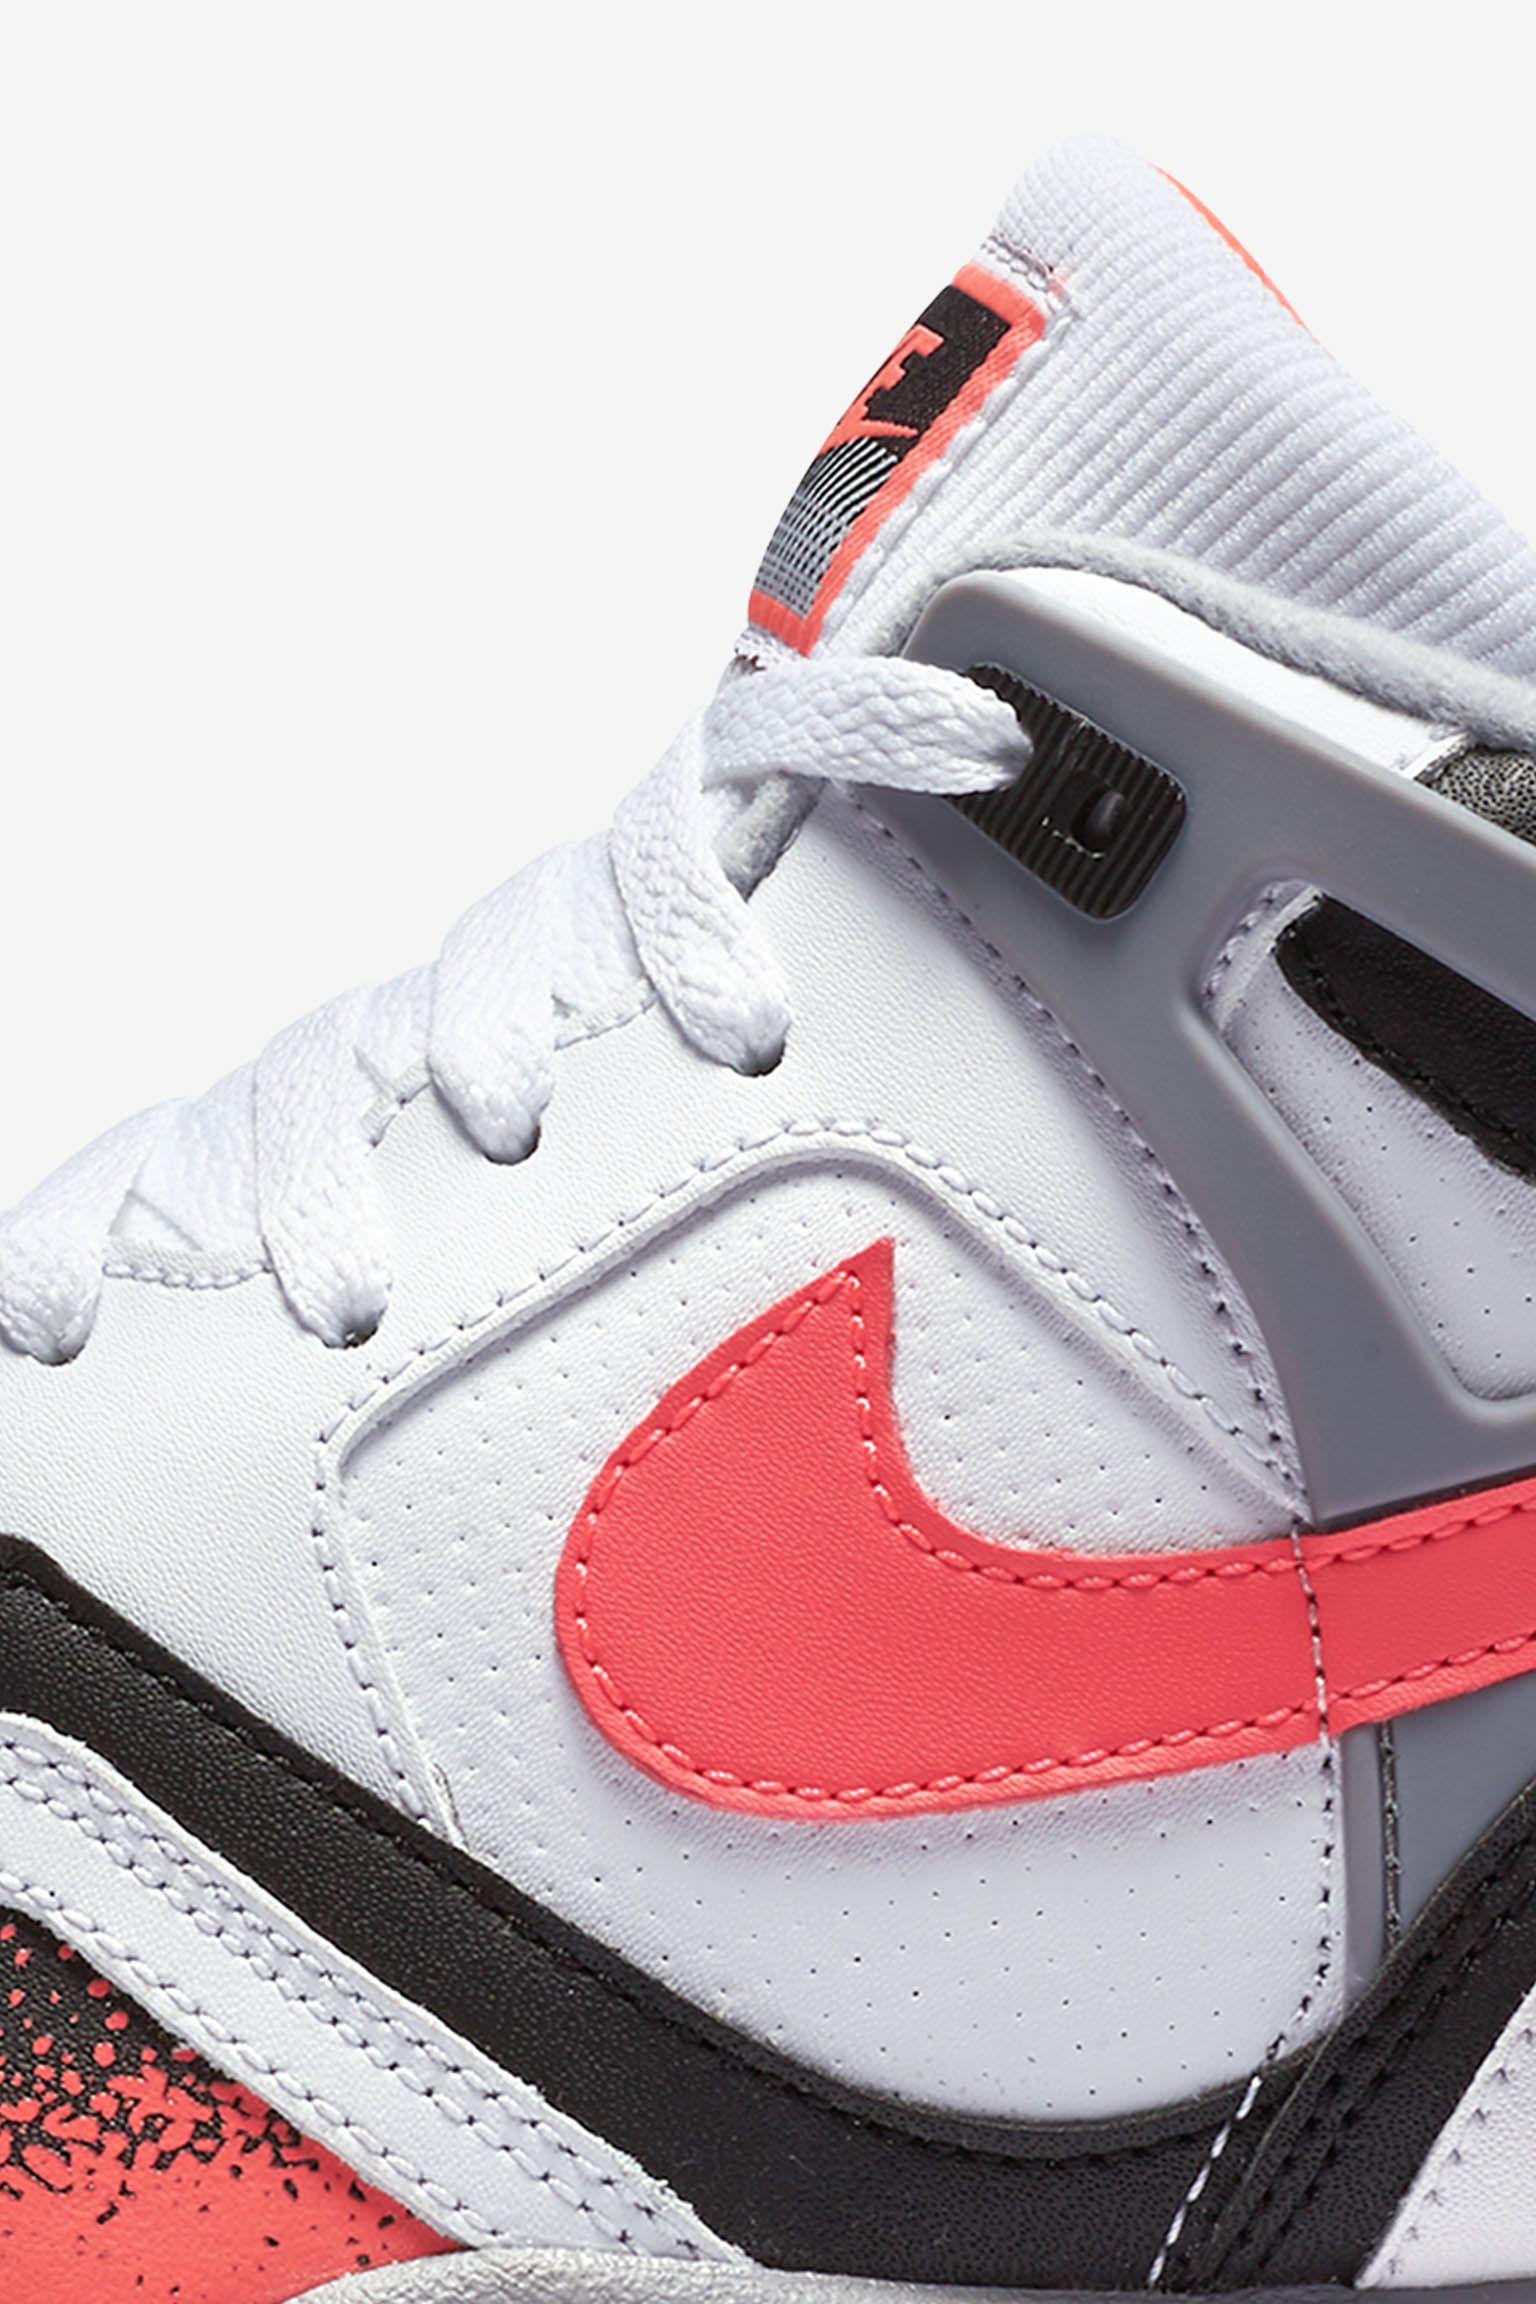 Nike Air Tech Challenge 2 'Hot Lava' 2016